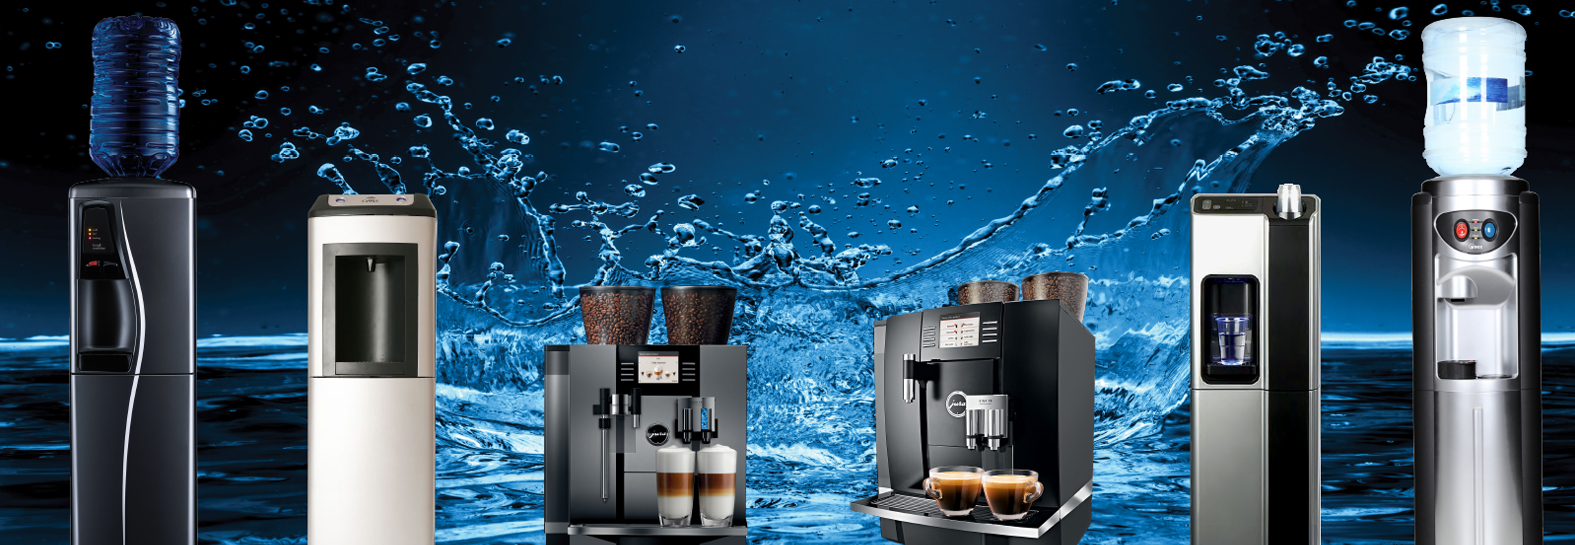 A UK leading supplier of Water dispensers, Hot water boilers and ...